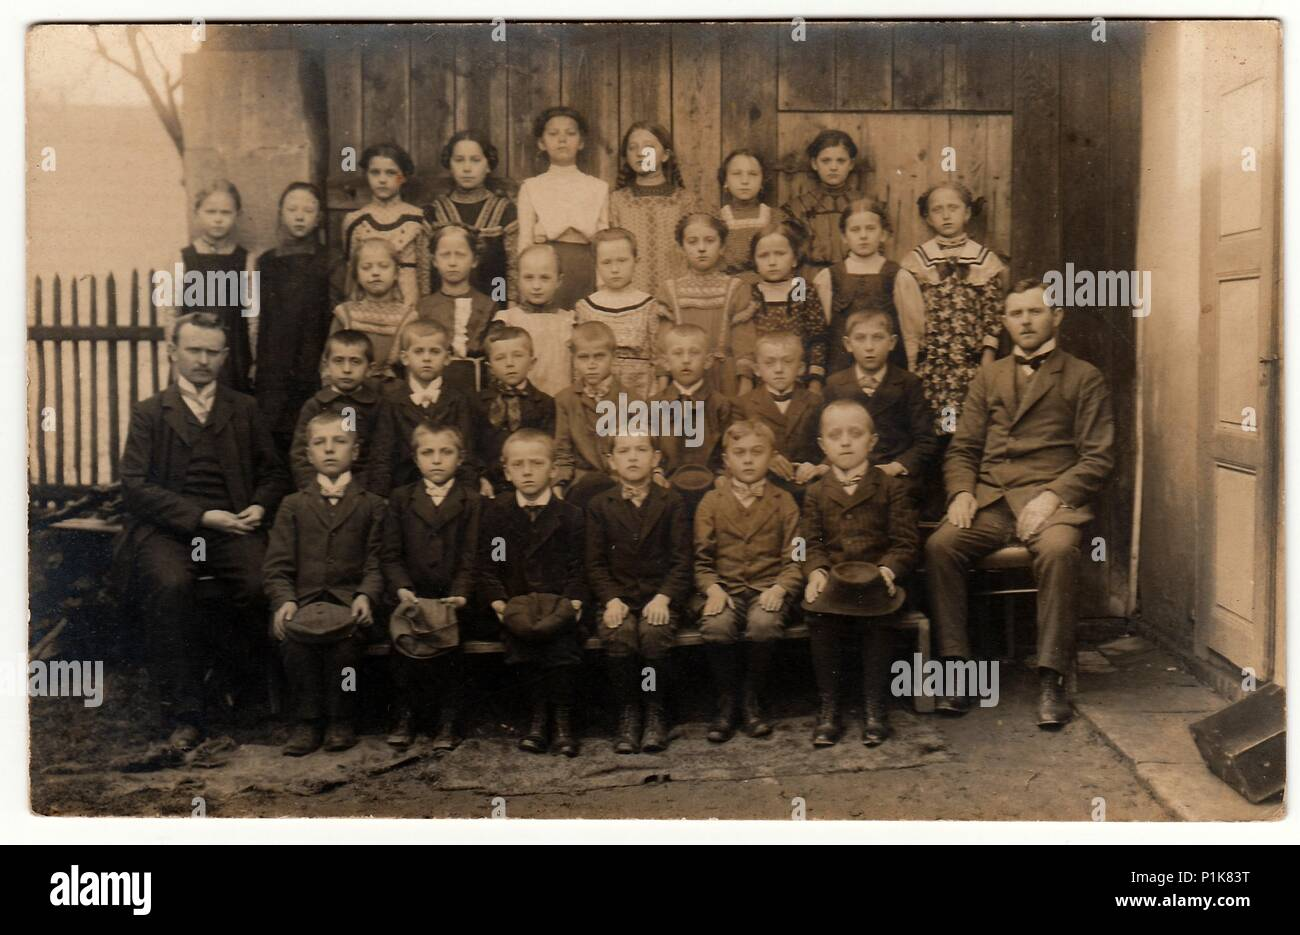 THE CZECHOSLOVAK  REPUBLIC - CIRCA 1930s: Vintage photo shows pupils (schoolmates) and  teachers in the rural back yard.  Black & white antique photography. - Stock Image